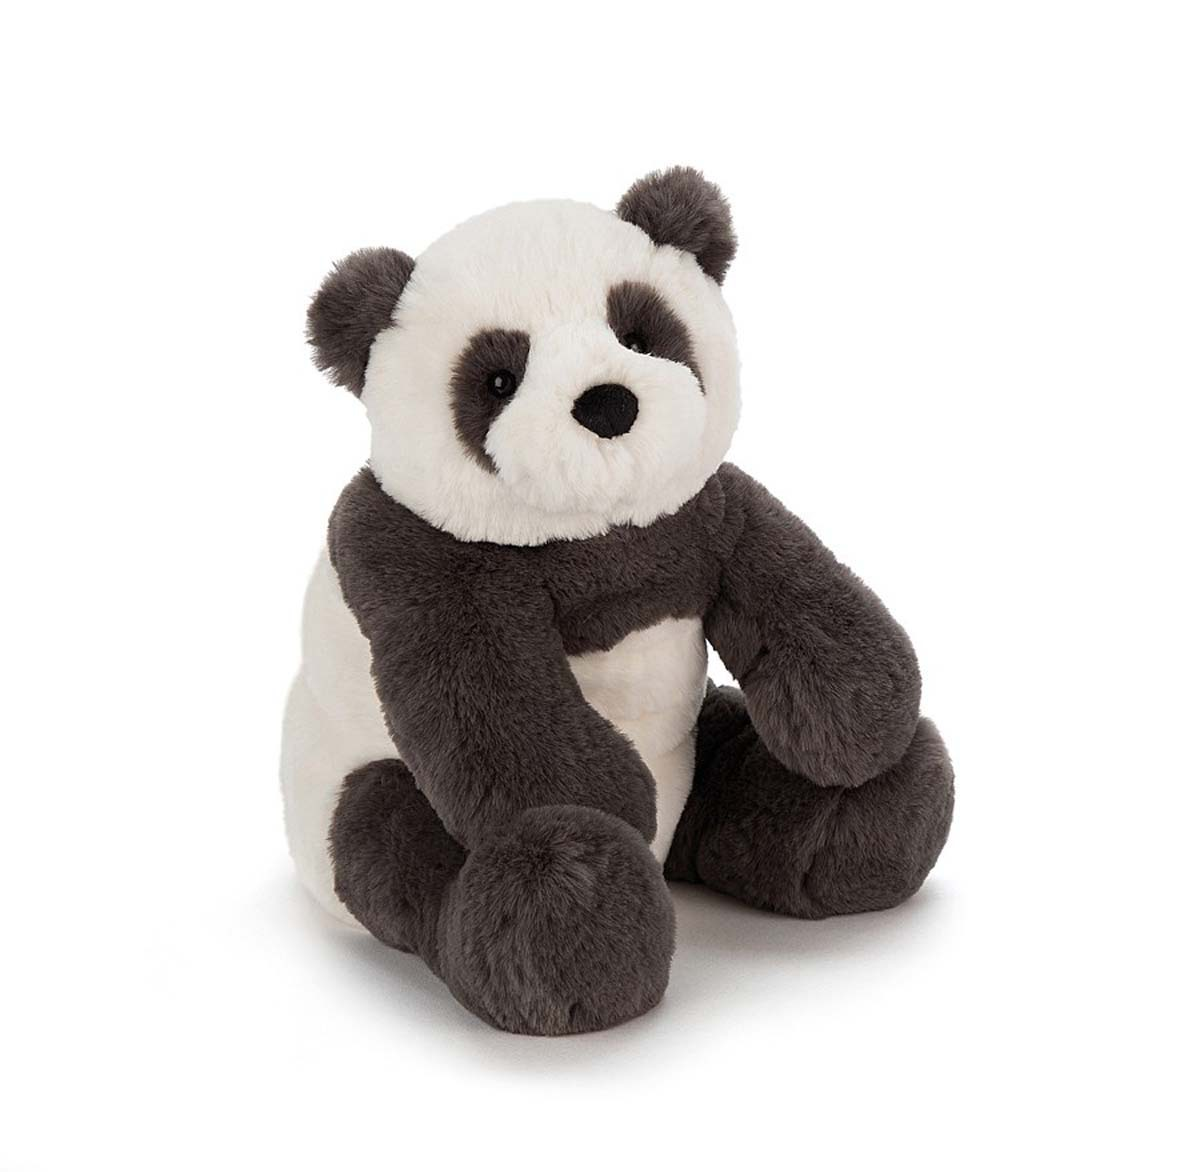 Peluche Harry Panda Cub - Large Harry Panda Cub - Large